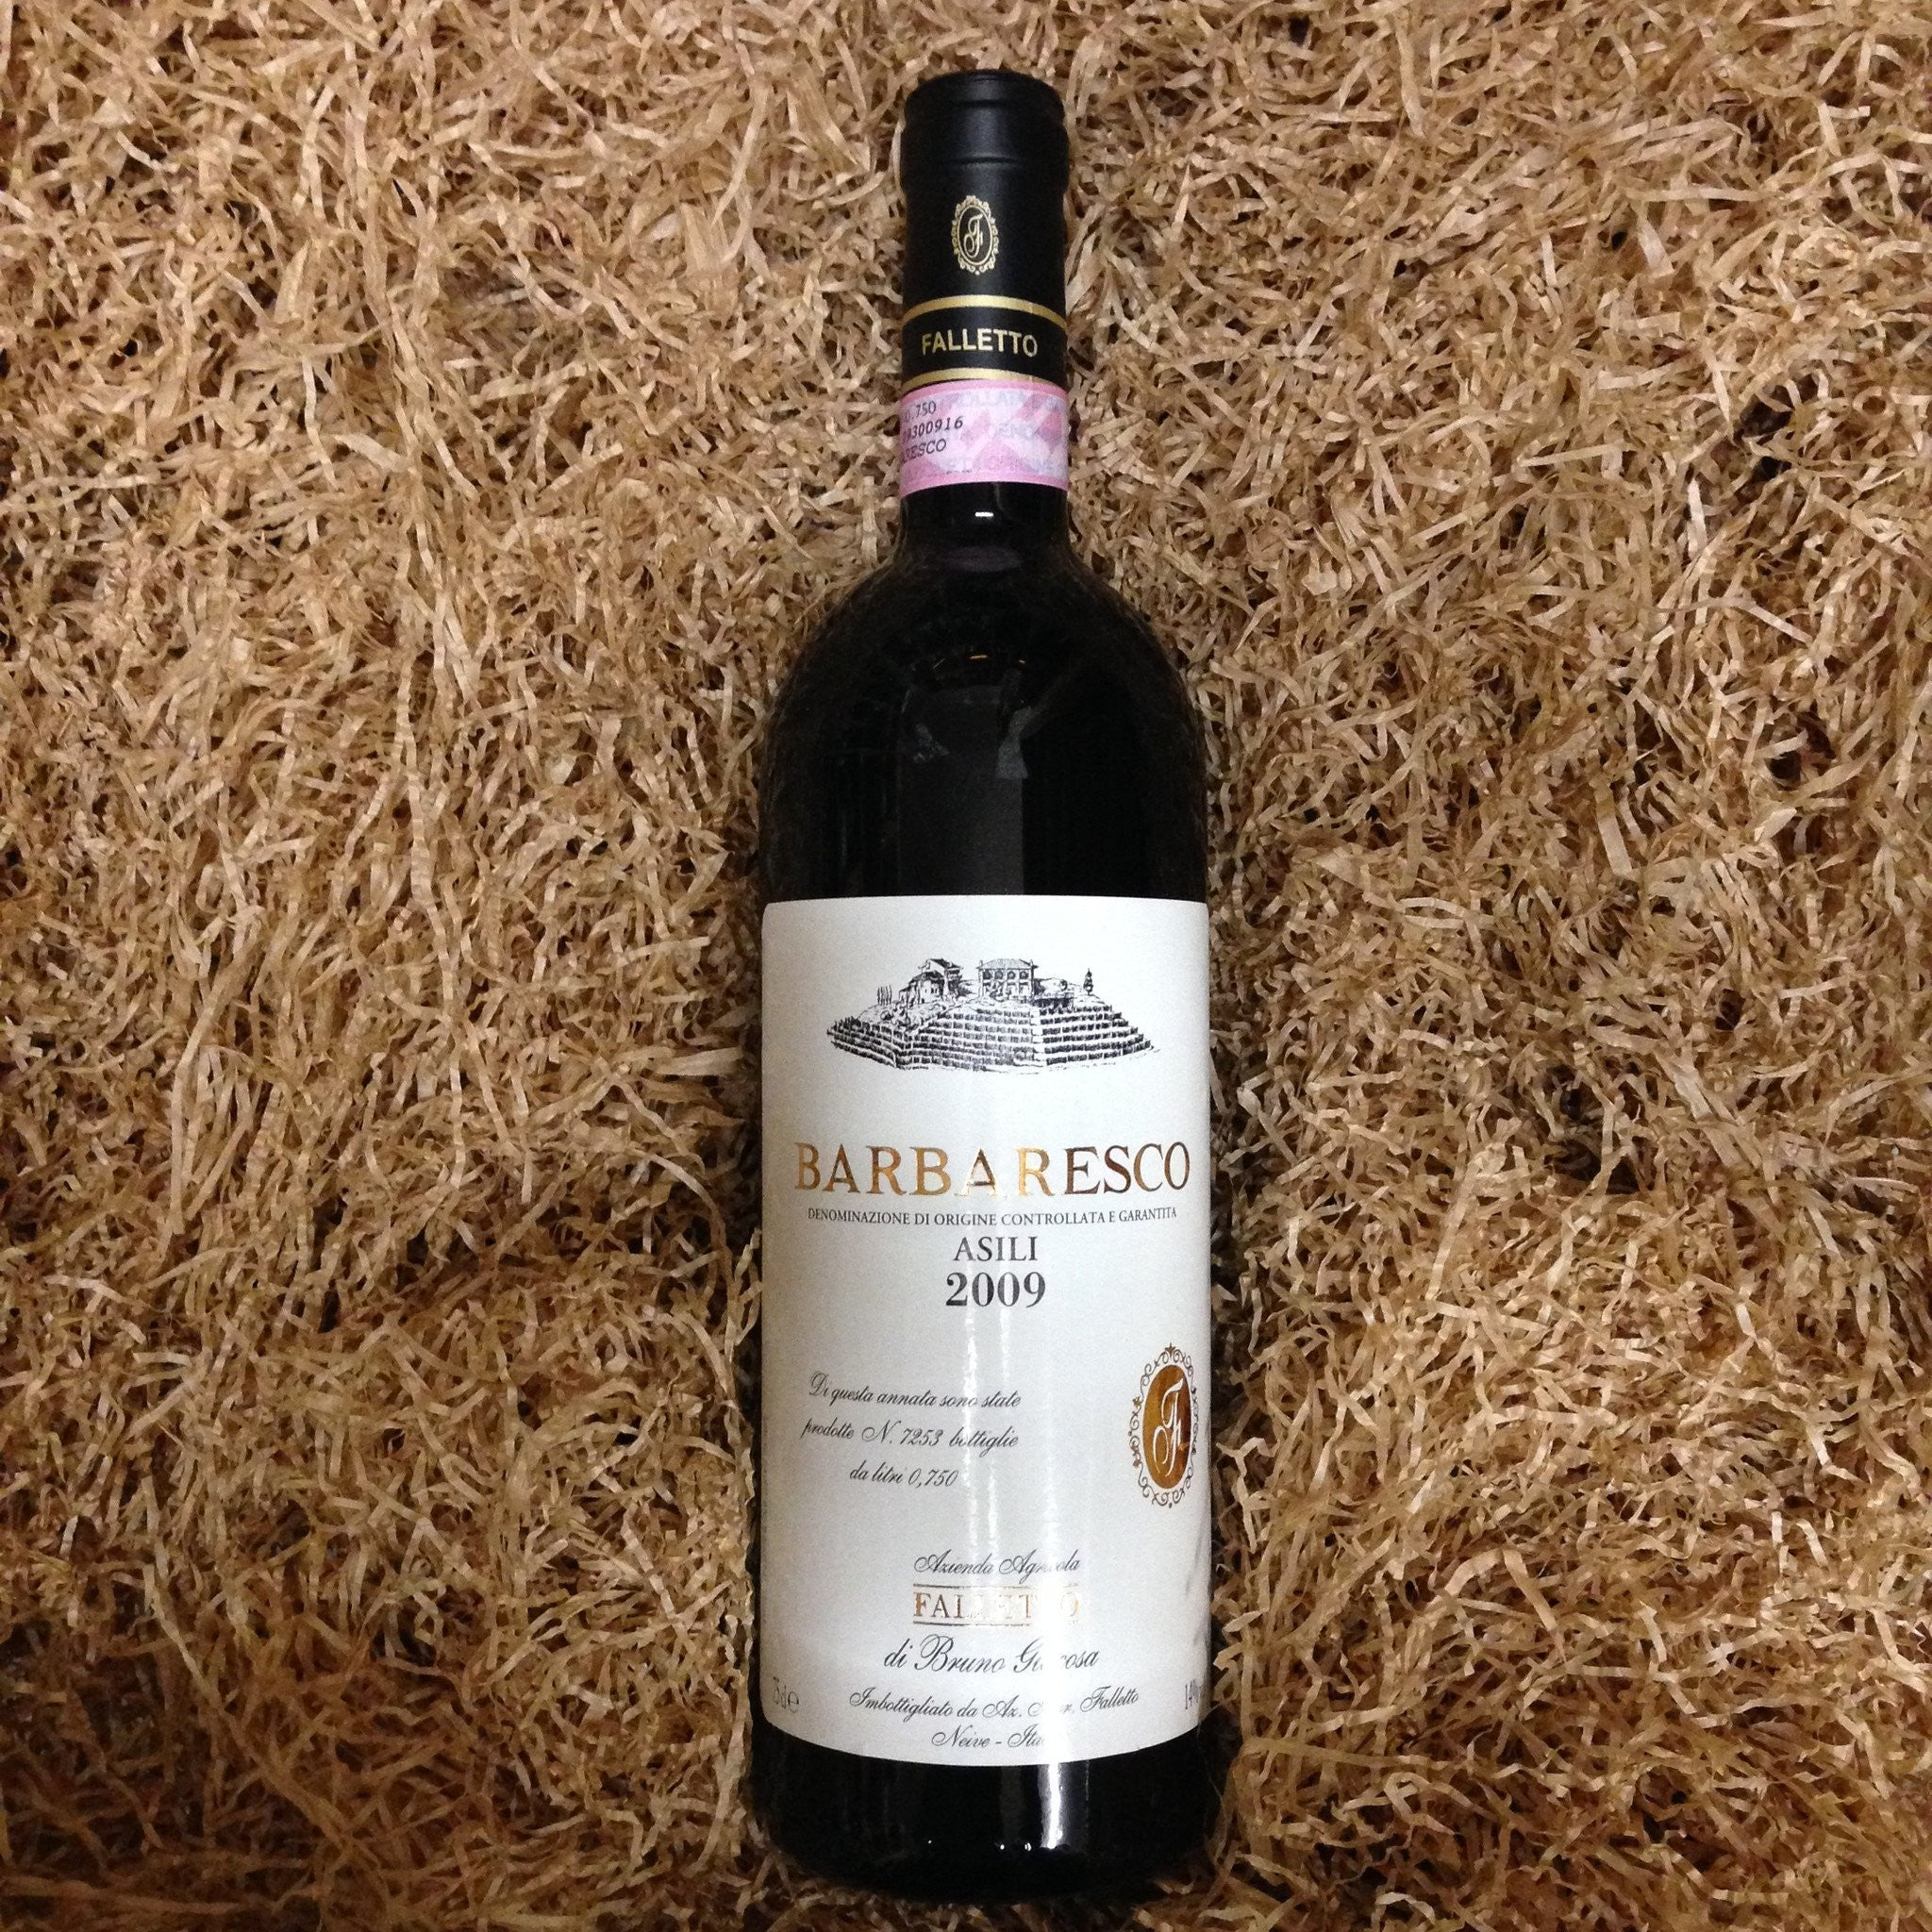 Barbaresco Asili